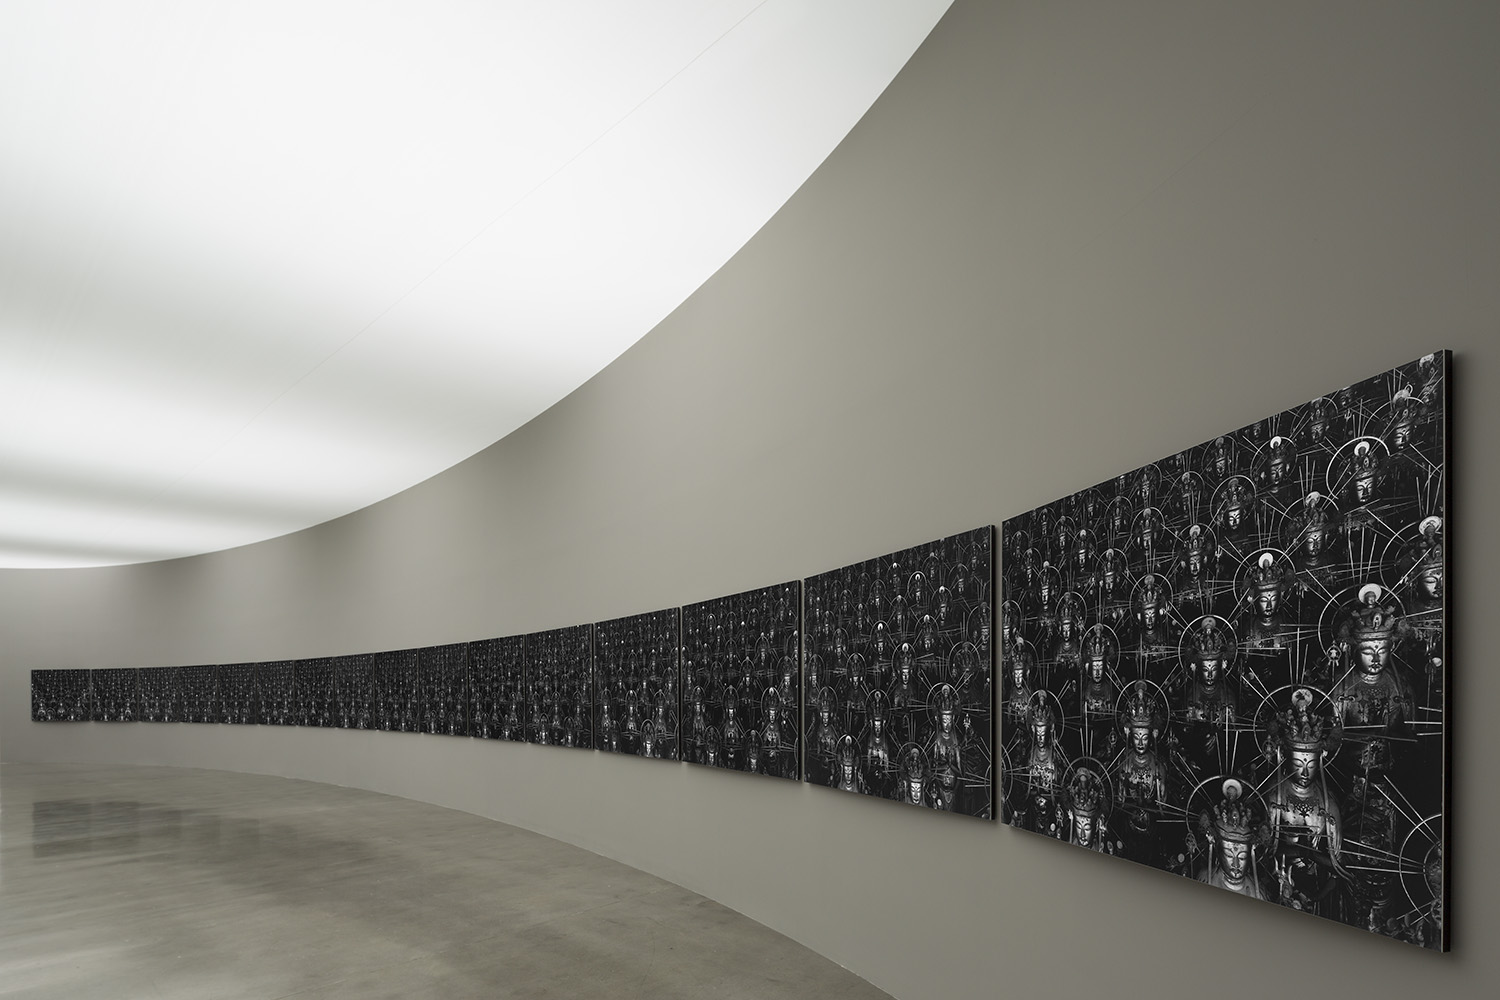 Pace Gallery, New York, 2016